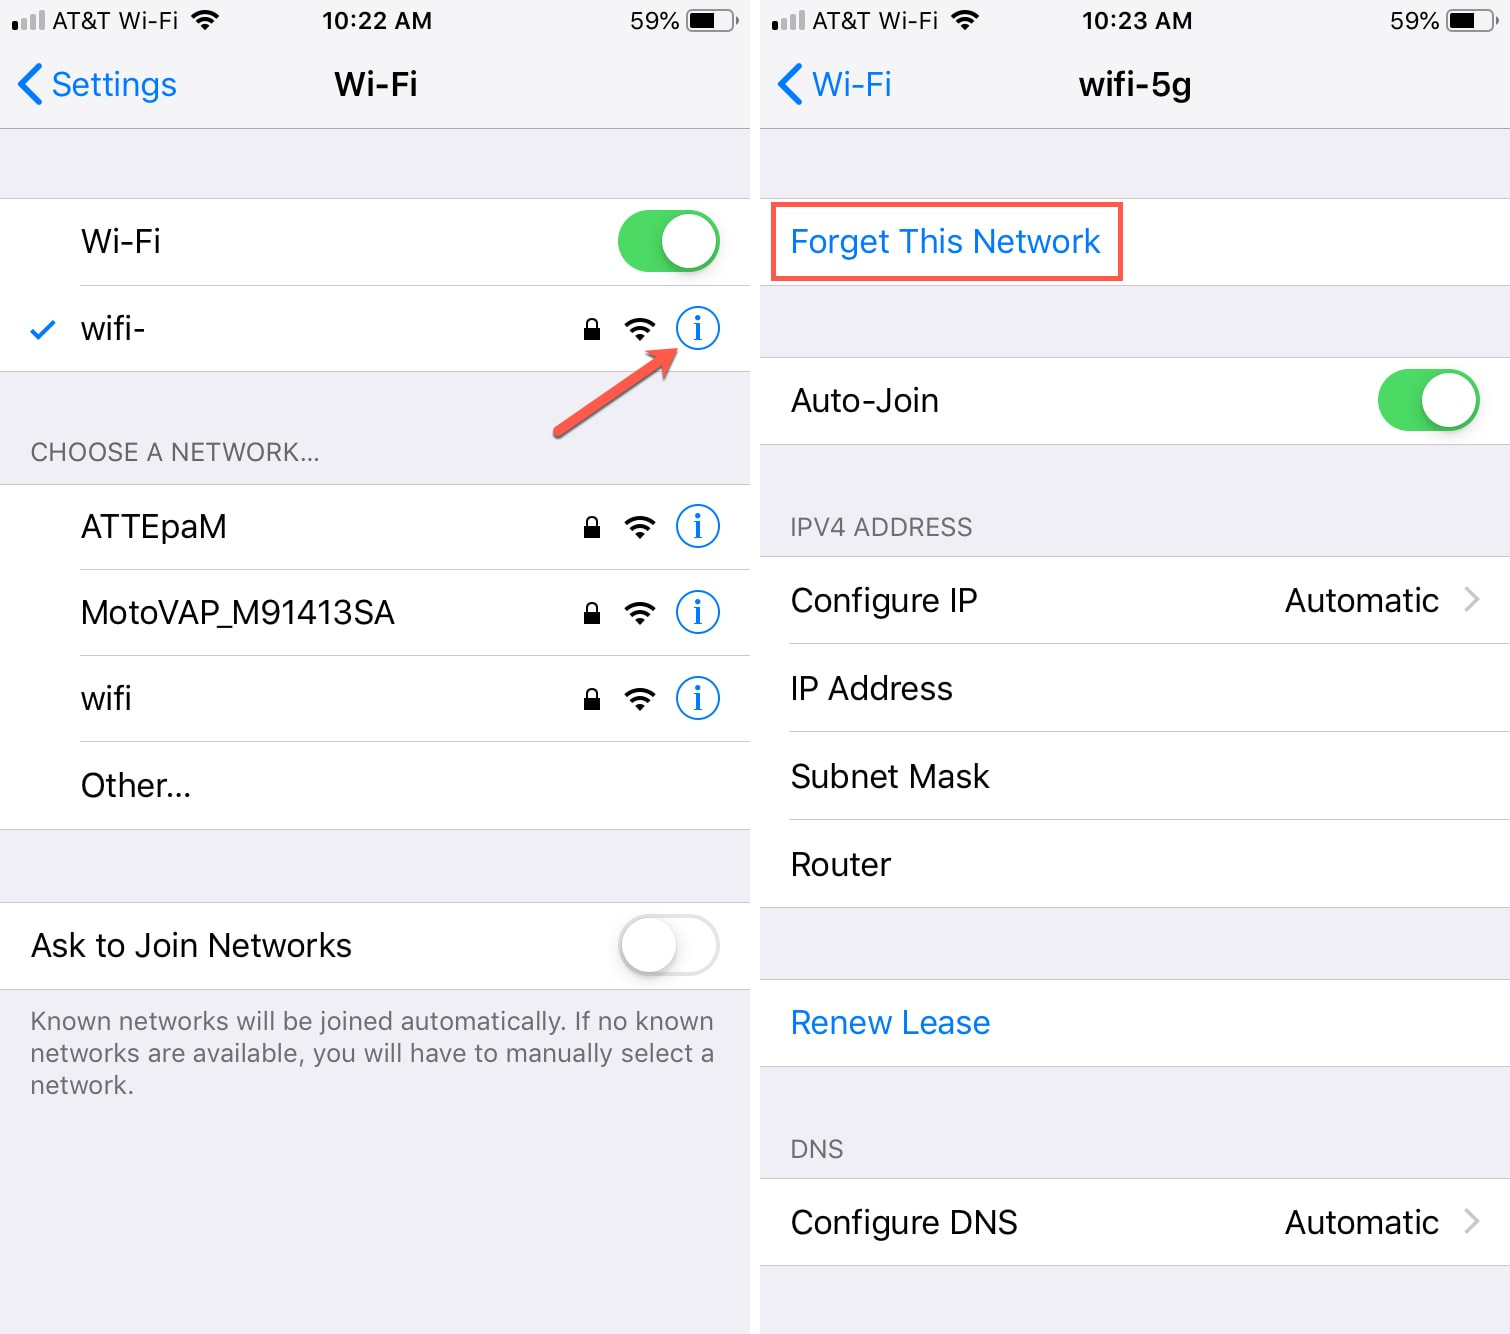 How to forget a Wi-Fi network on iPhone, iPad and Mac